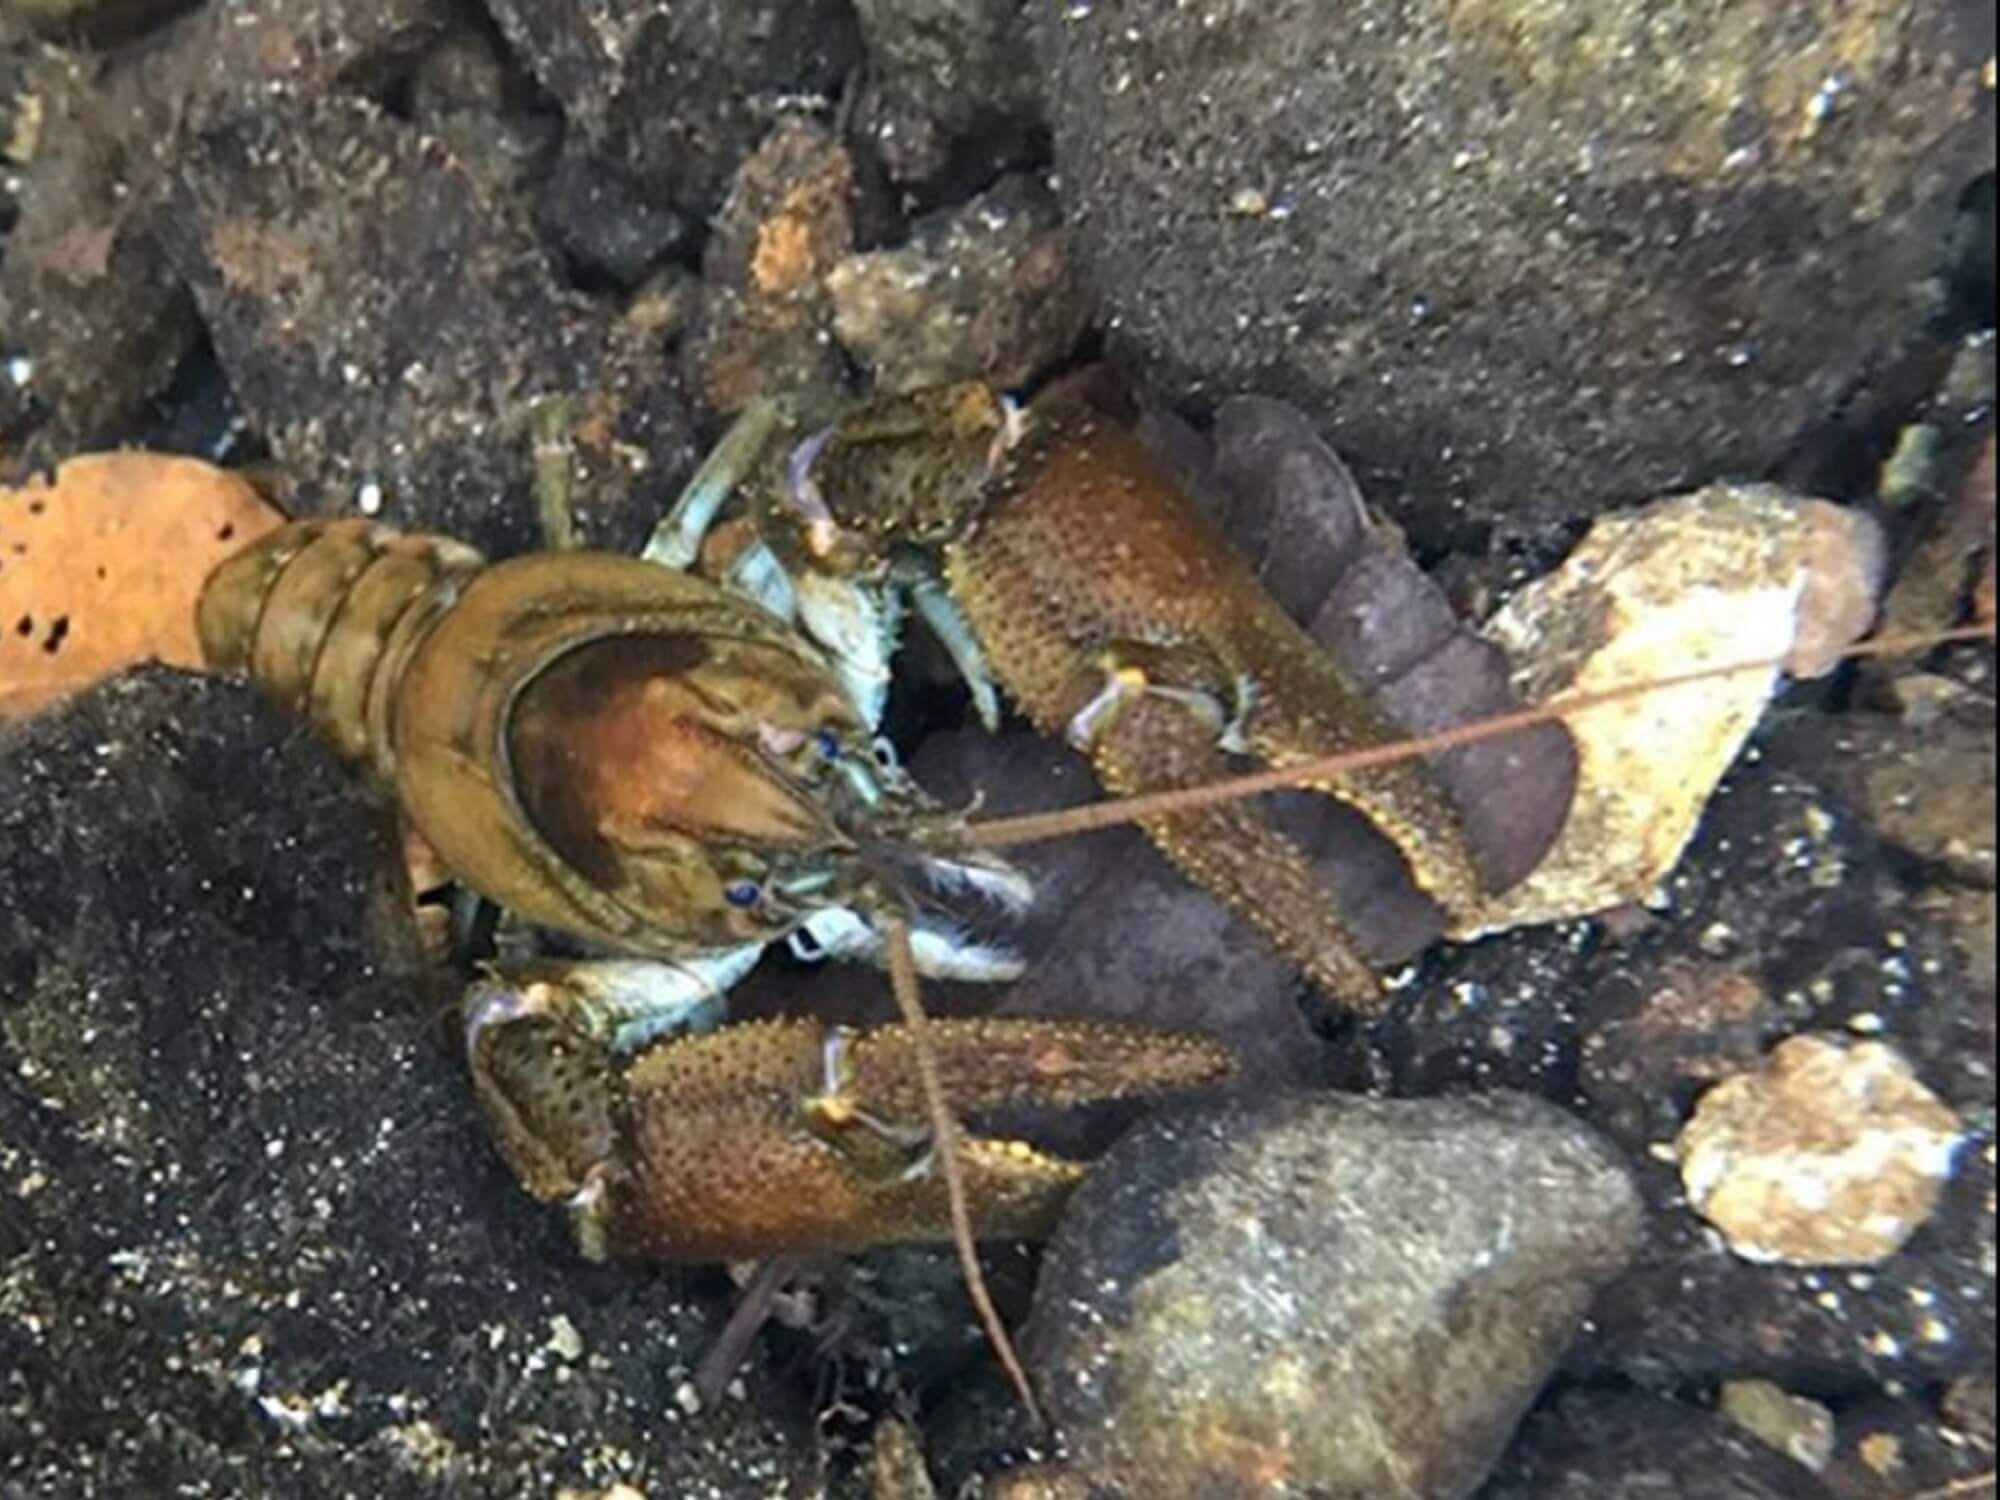 Crayfish pictured in natural habitat